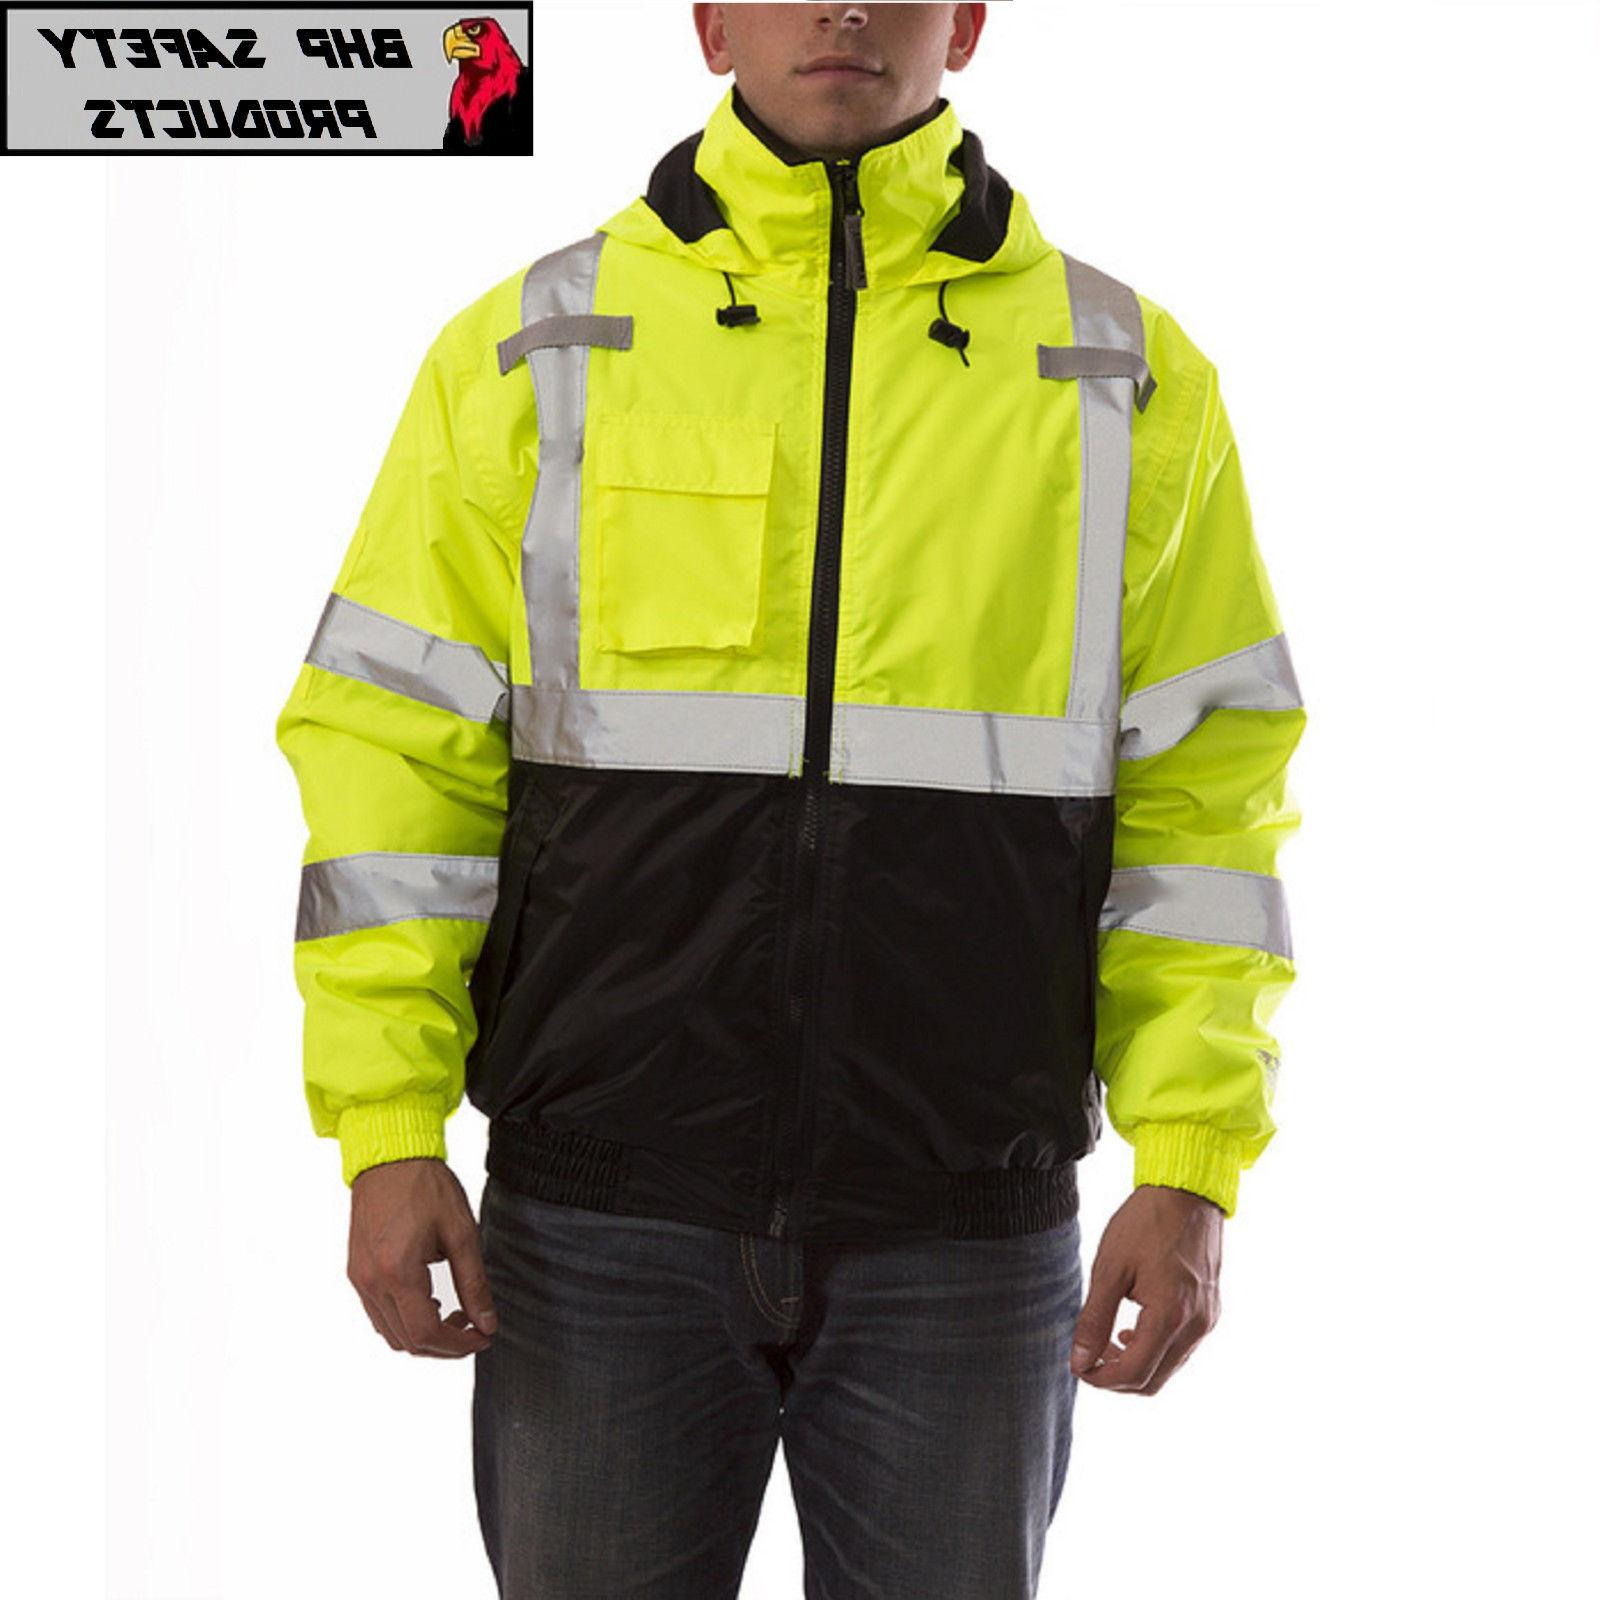 REFLECTIVE BOMBER II JACKET HI-VIZ WATERPROOF ANSI TINGLEY C